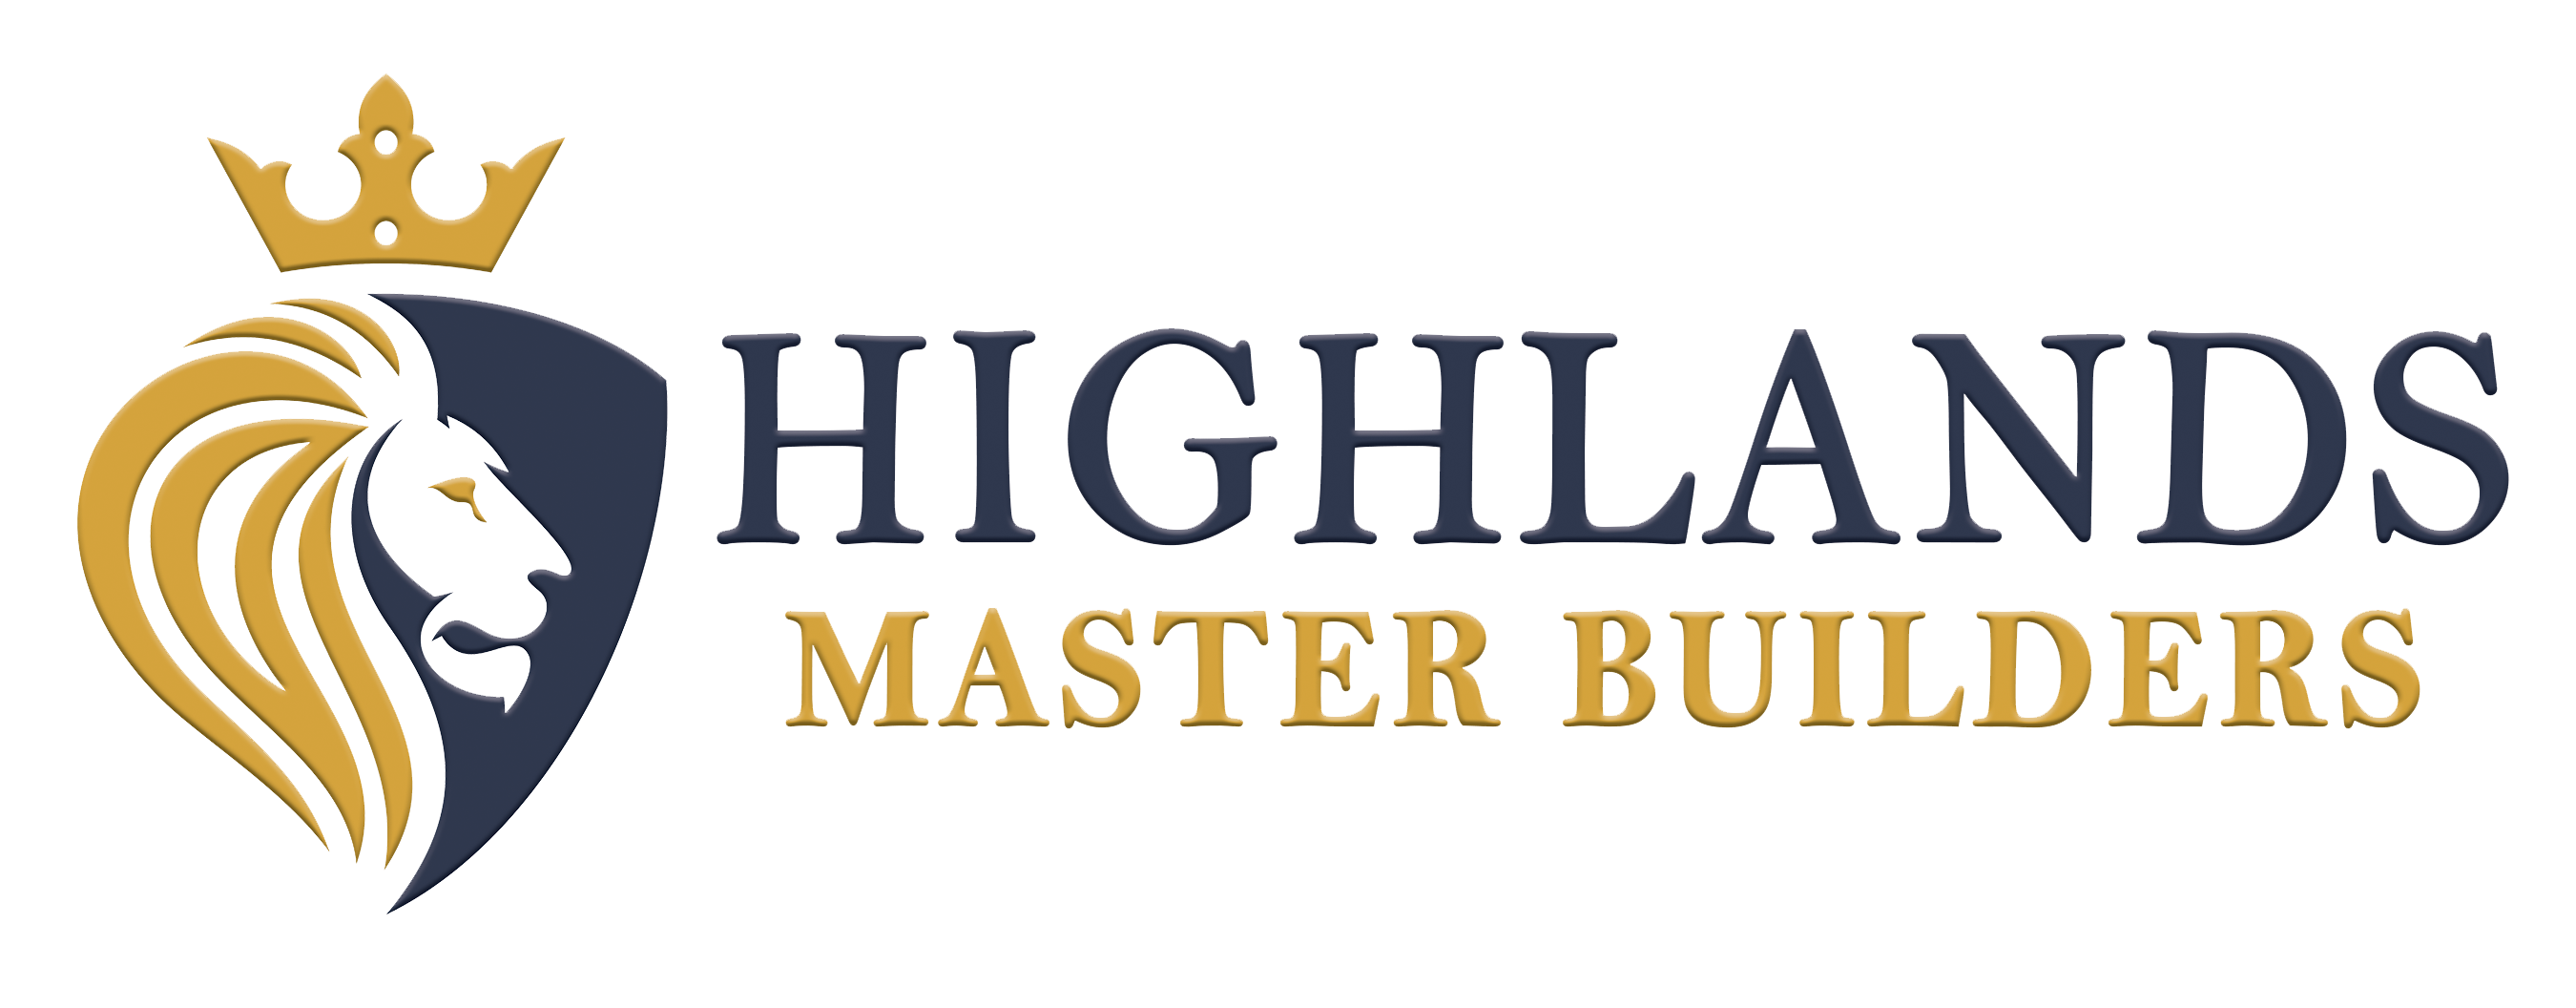 Highlands Master Builders